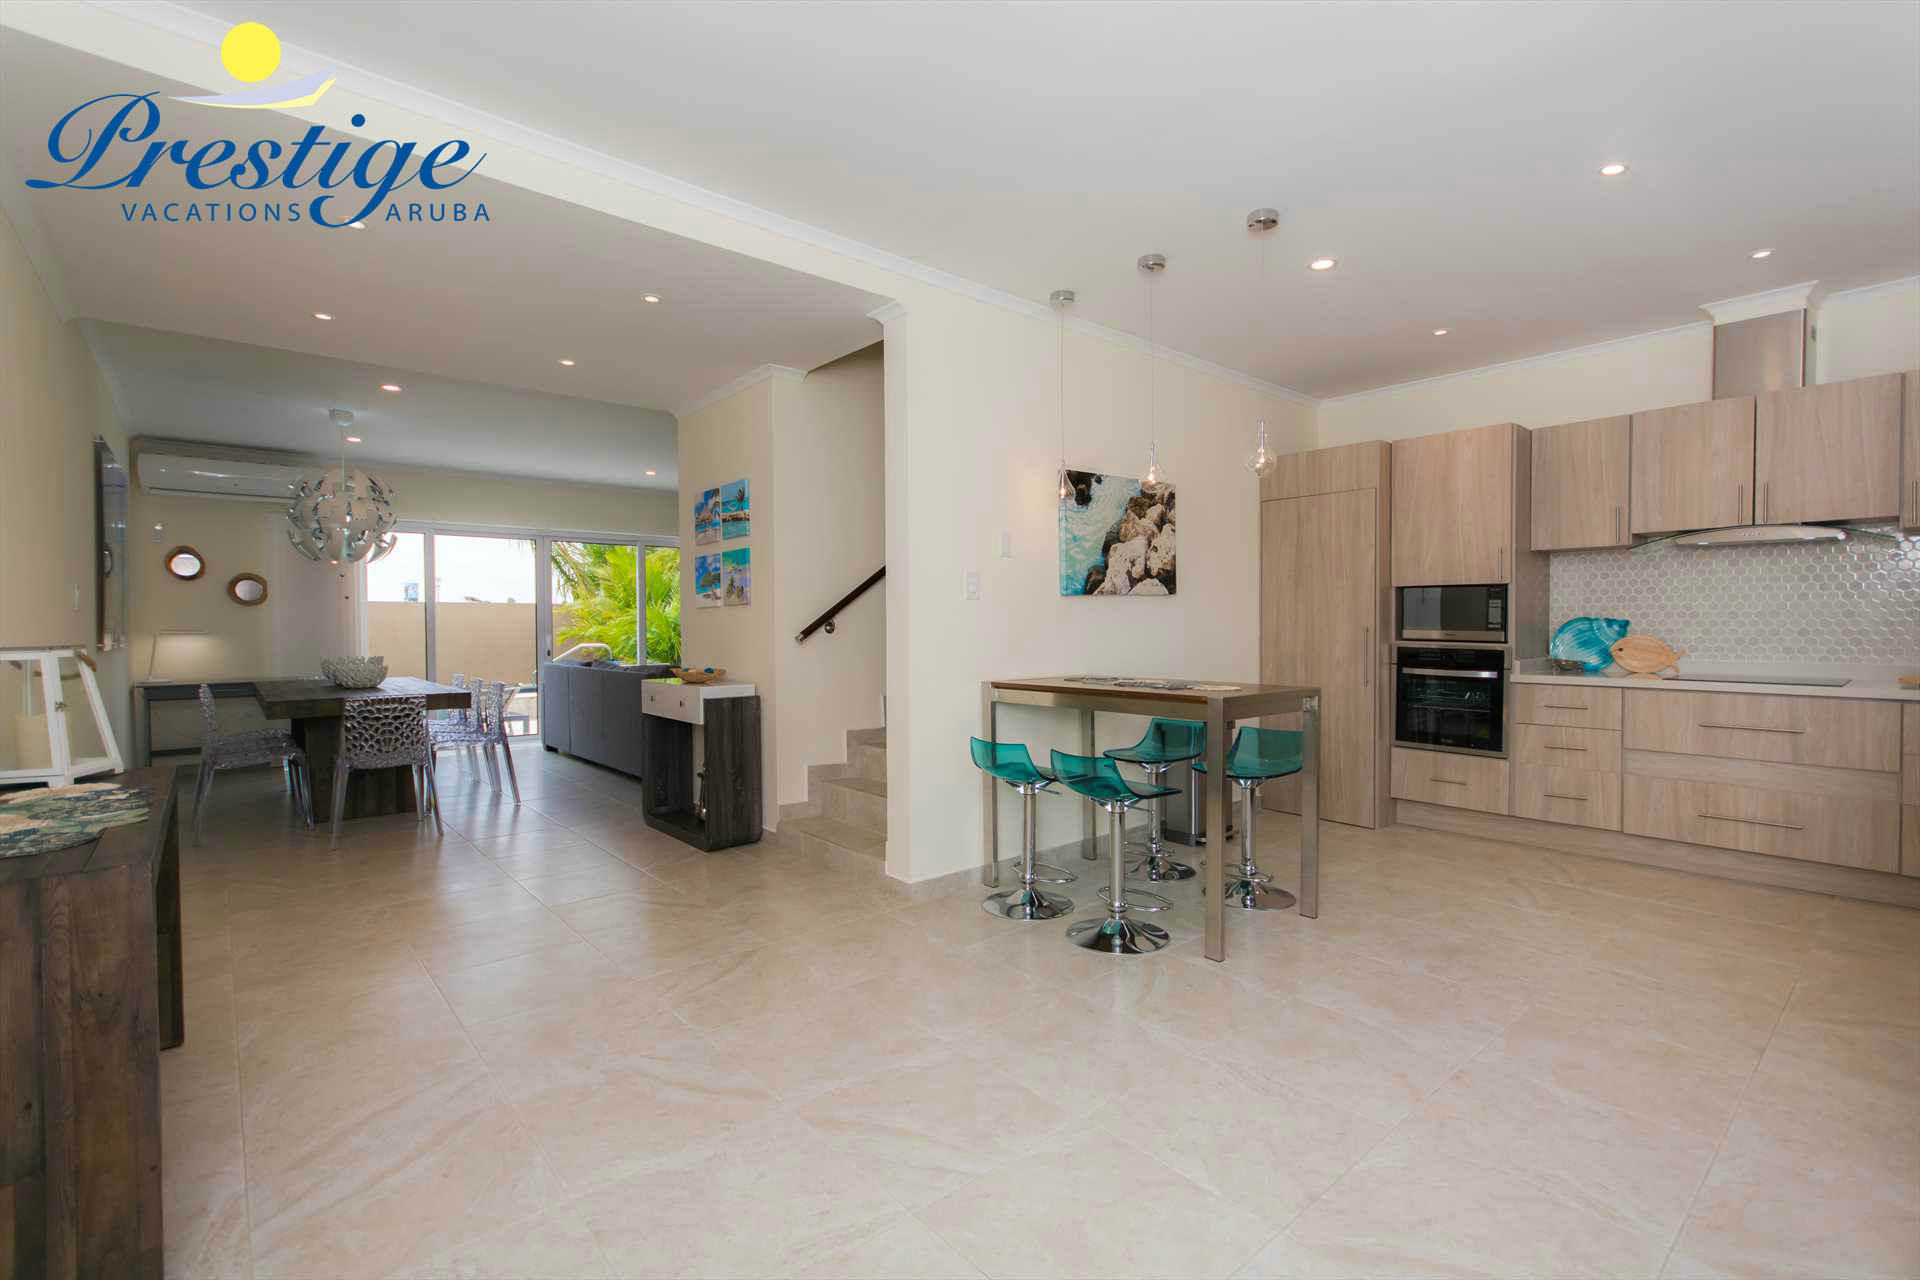 Your spacious 3-level vacation rental completed with island beach decor